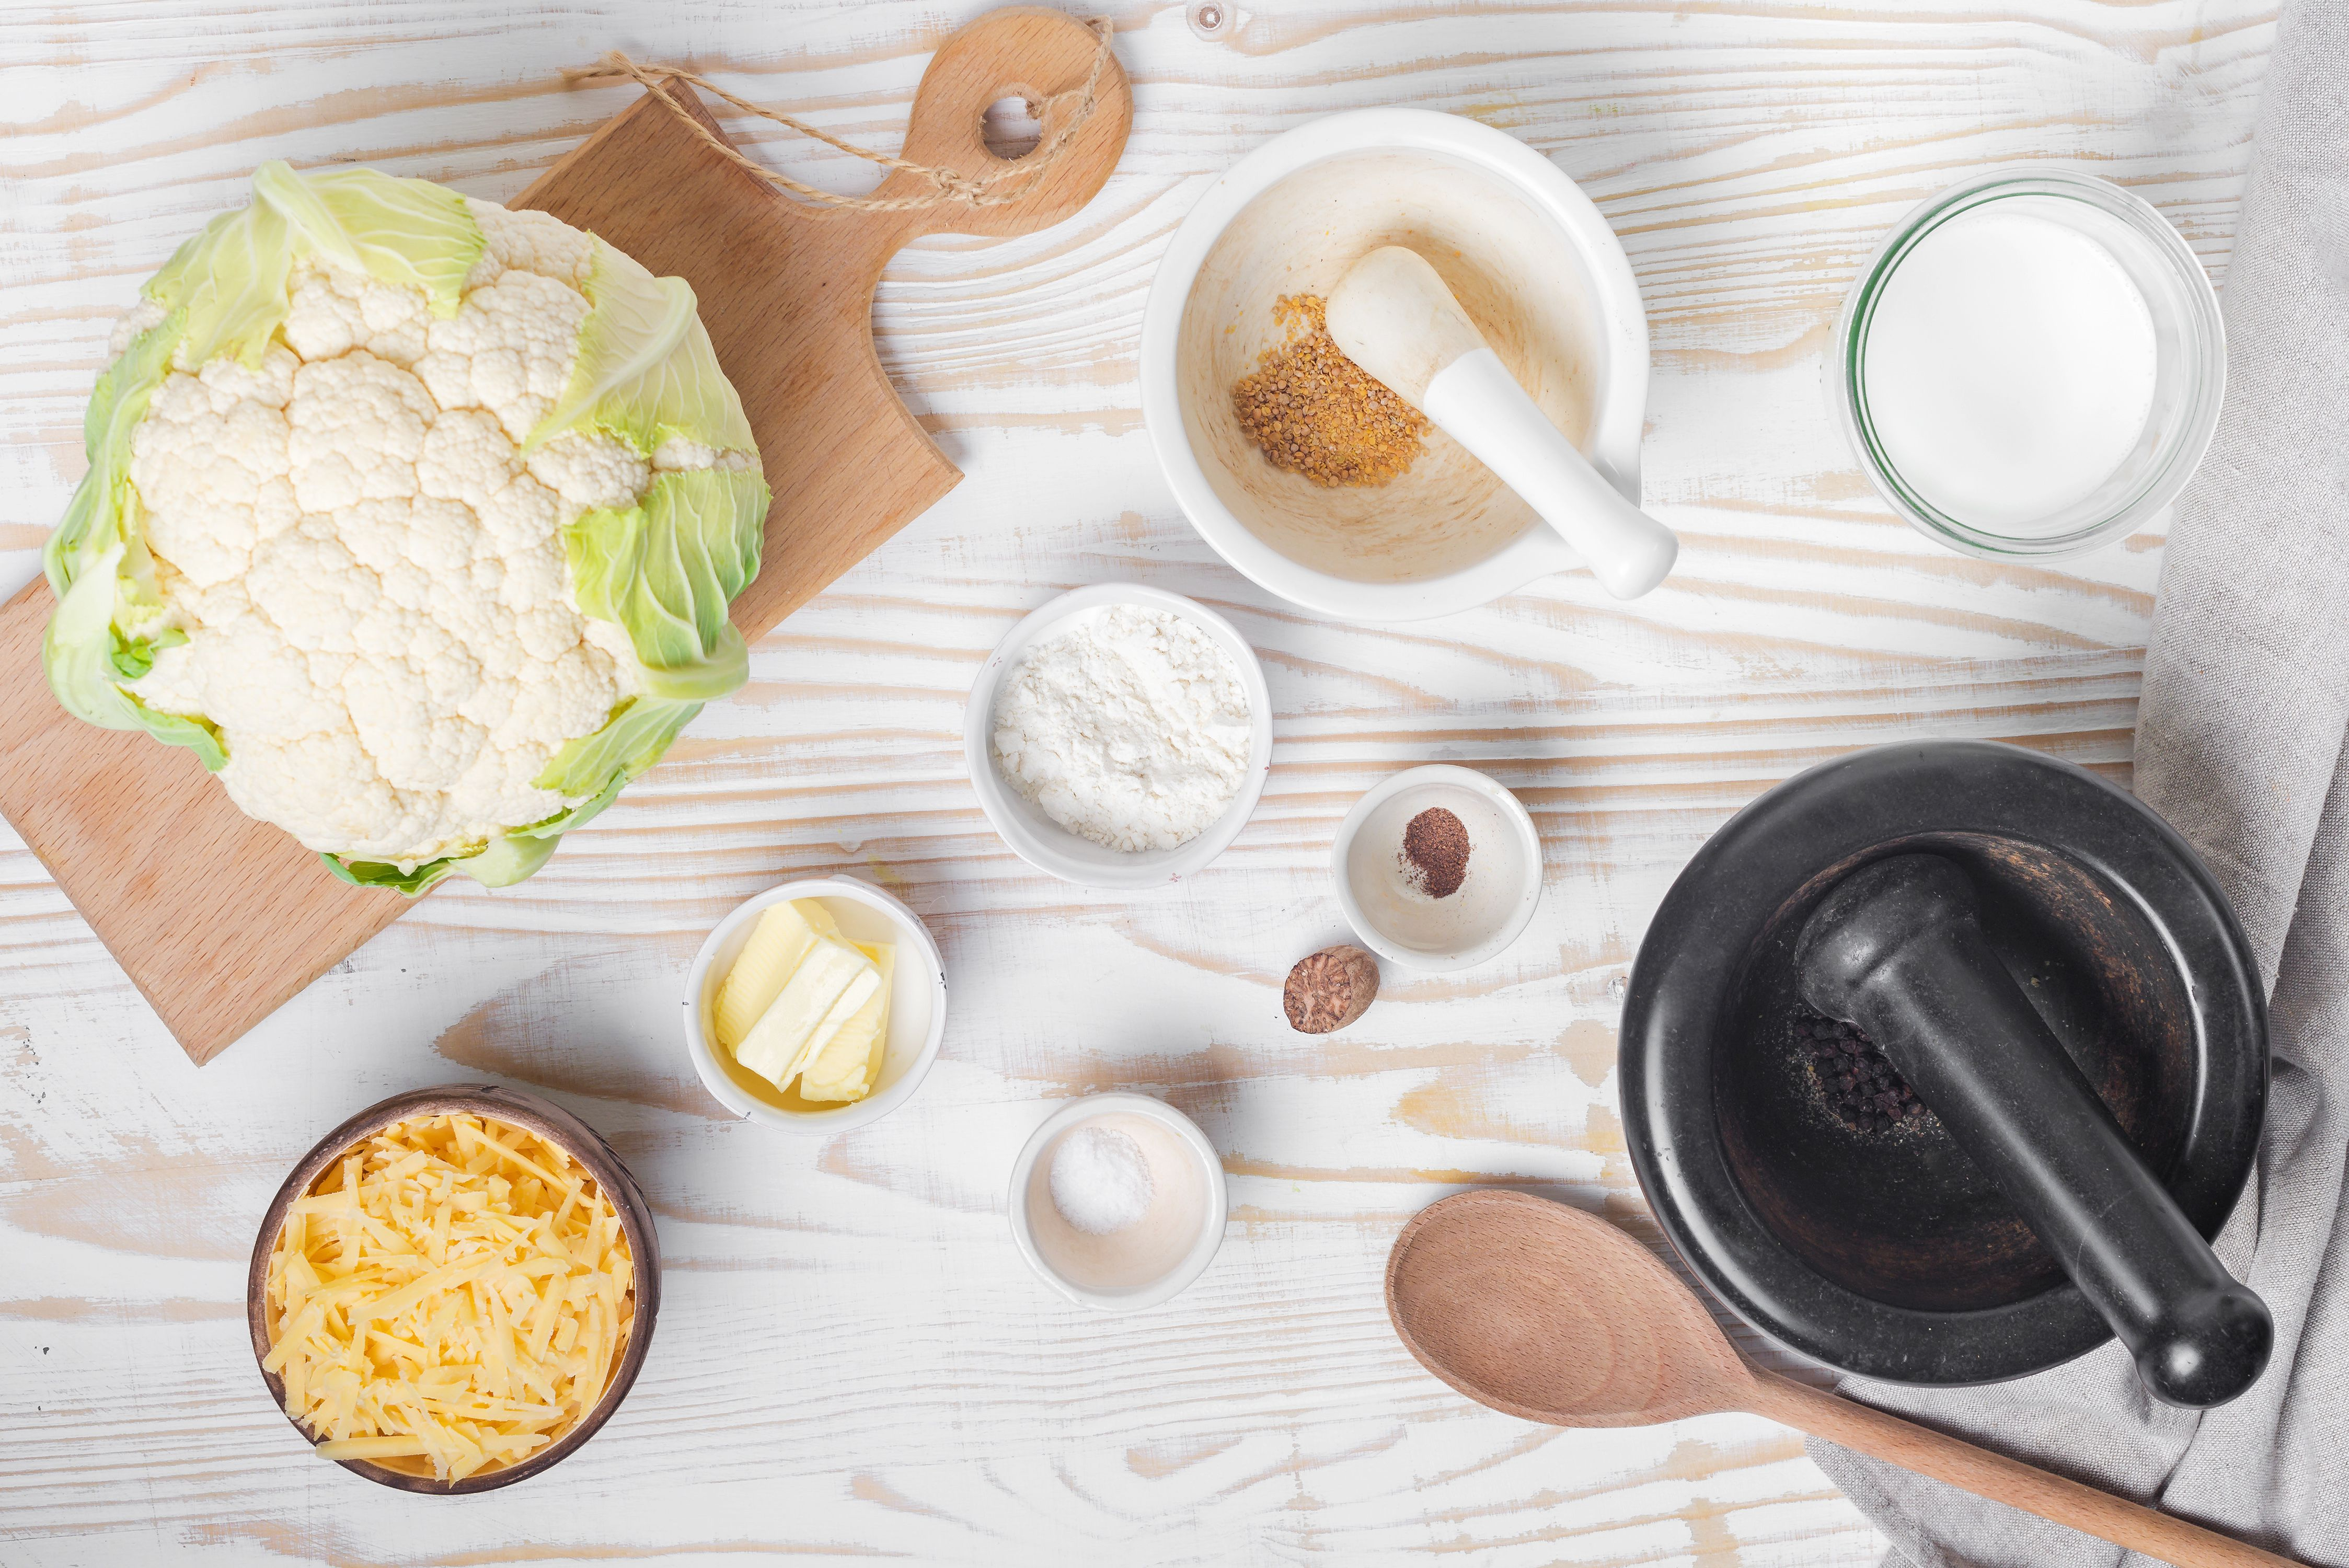 Ingredients for cauliflower with cheese sauce